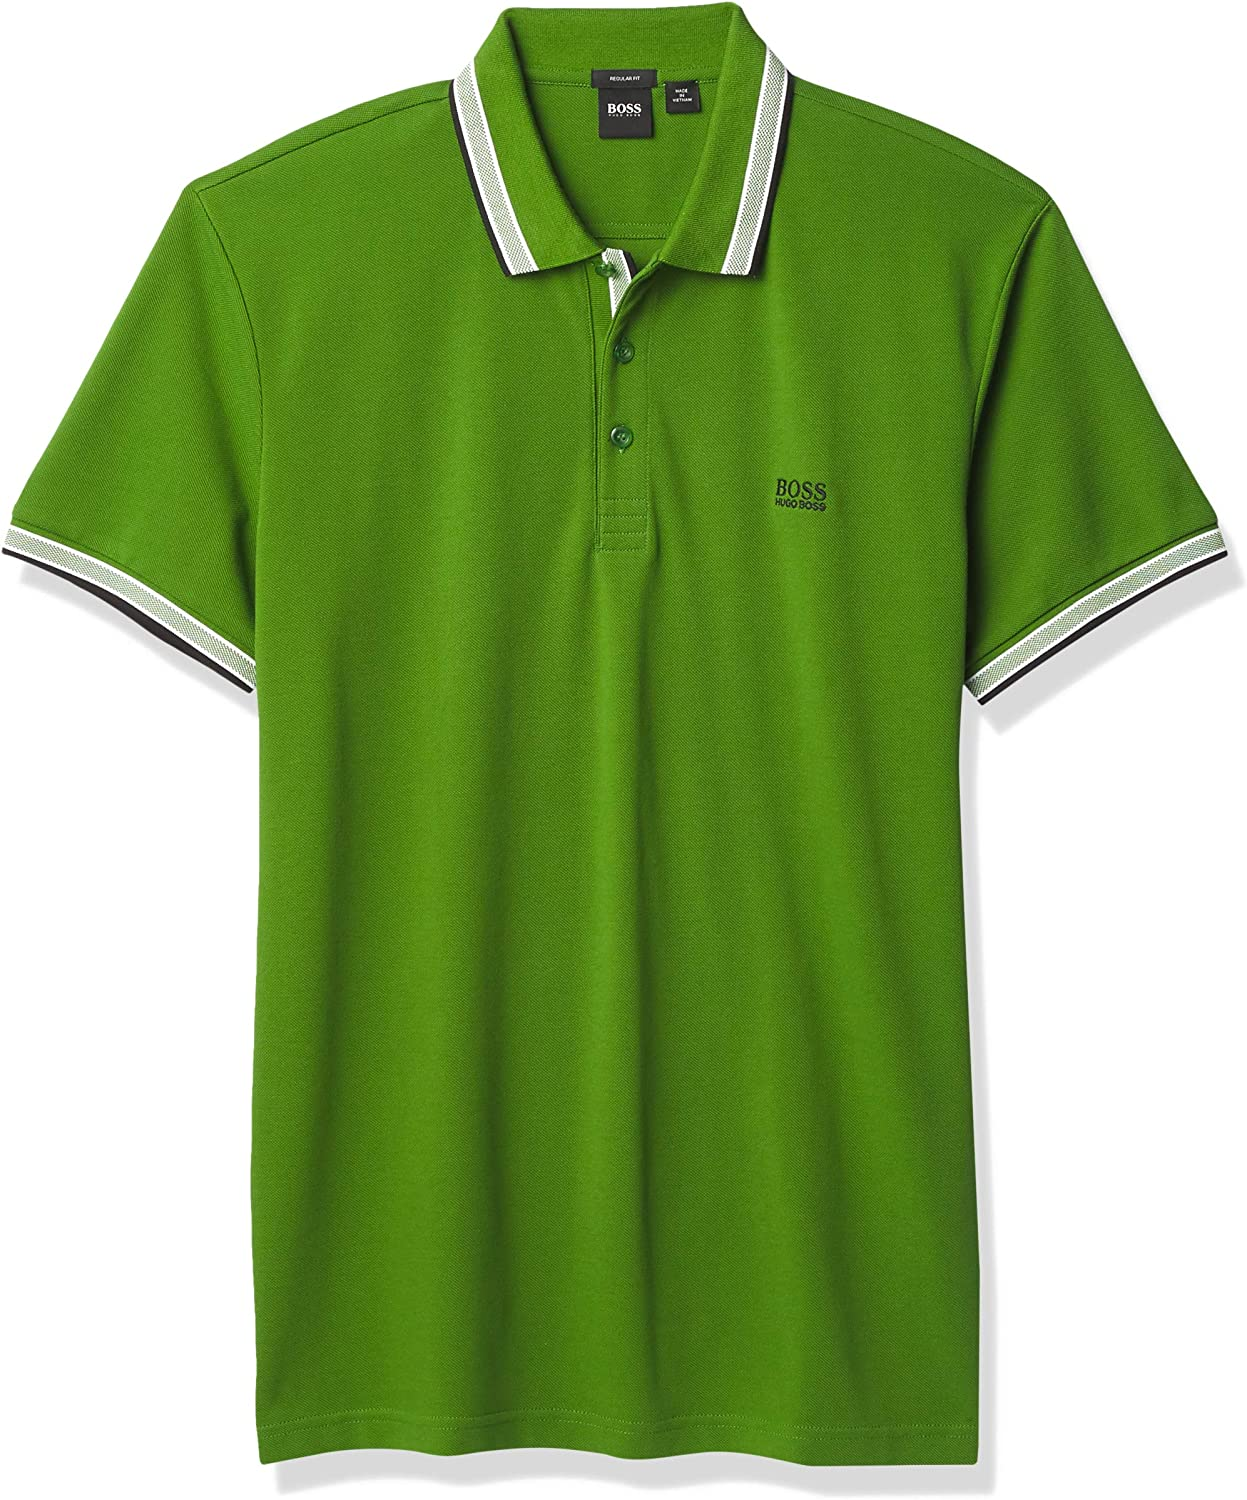 Sale item Hugo Boss Men's Polo All stores are sold Shirt